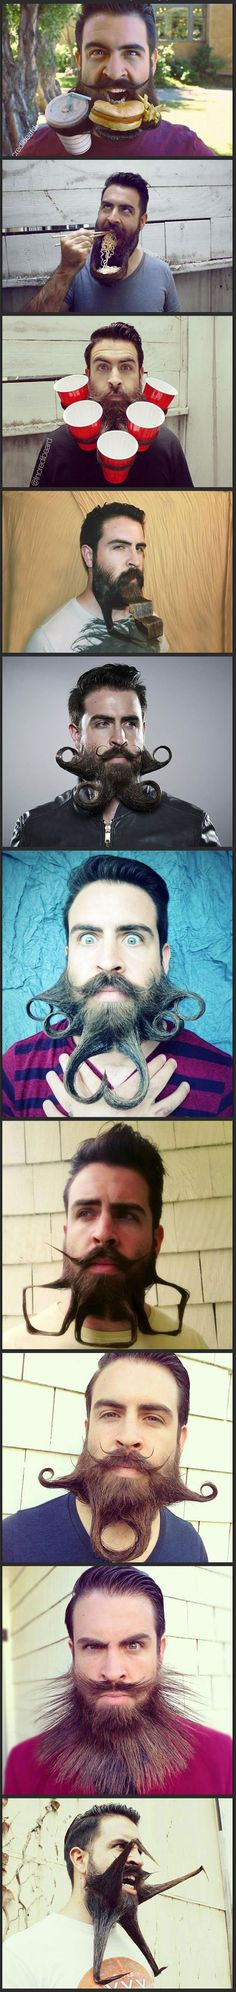 This man's beard is more talented than some people's children.